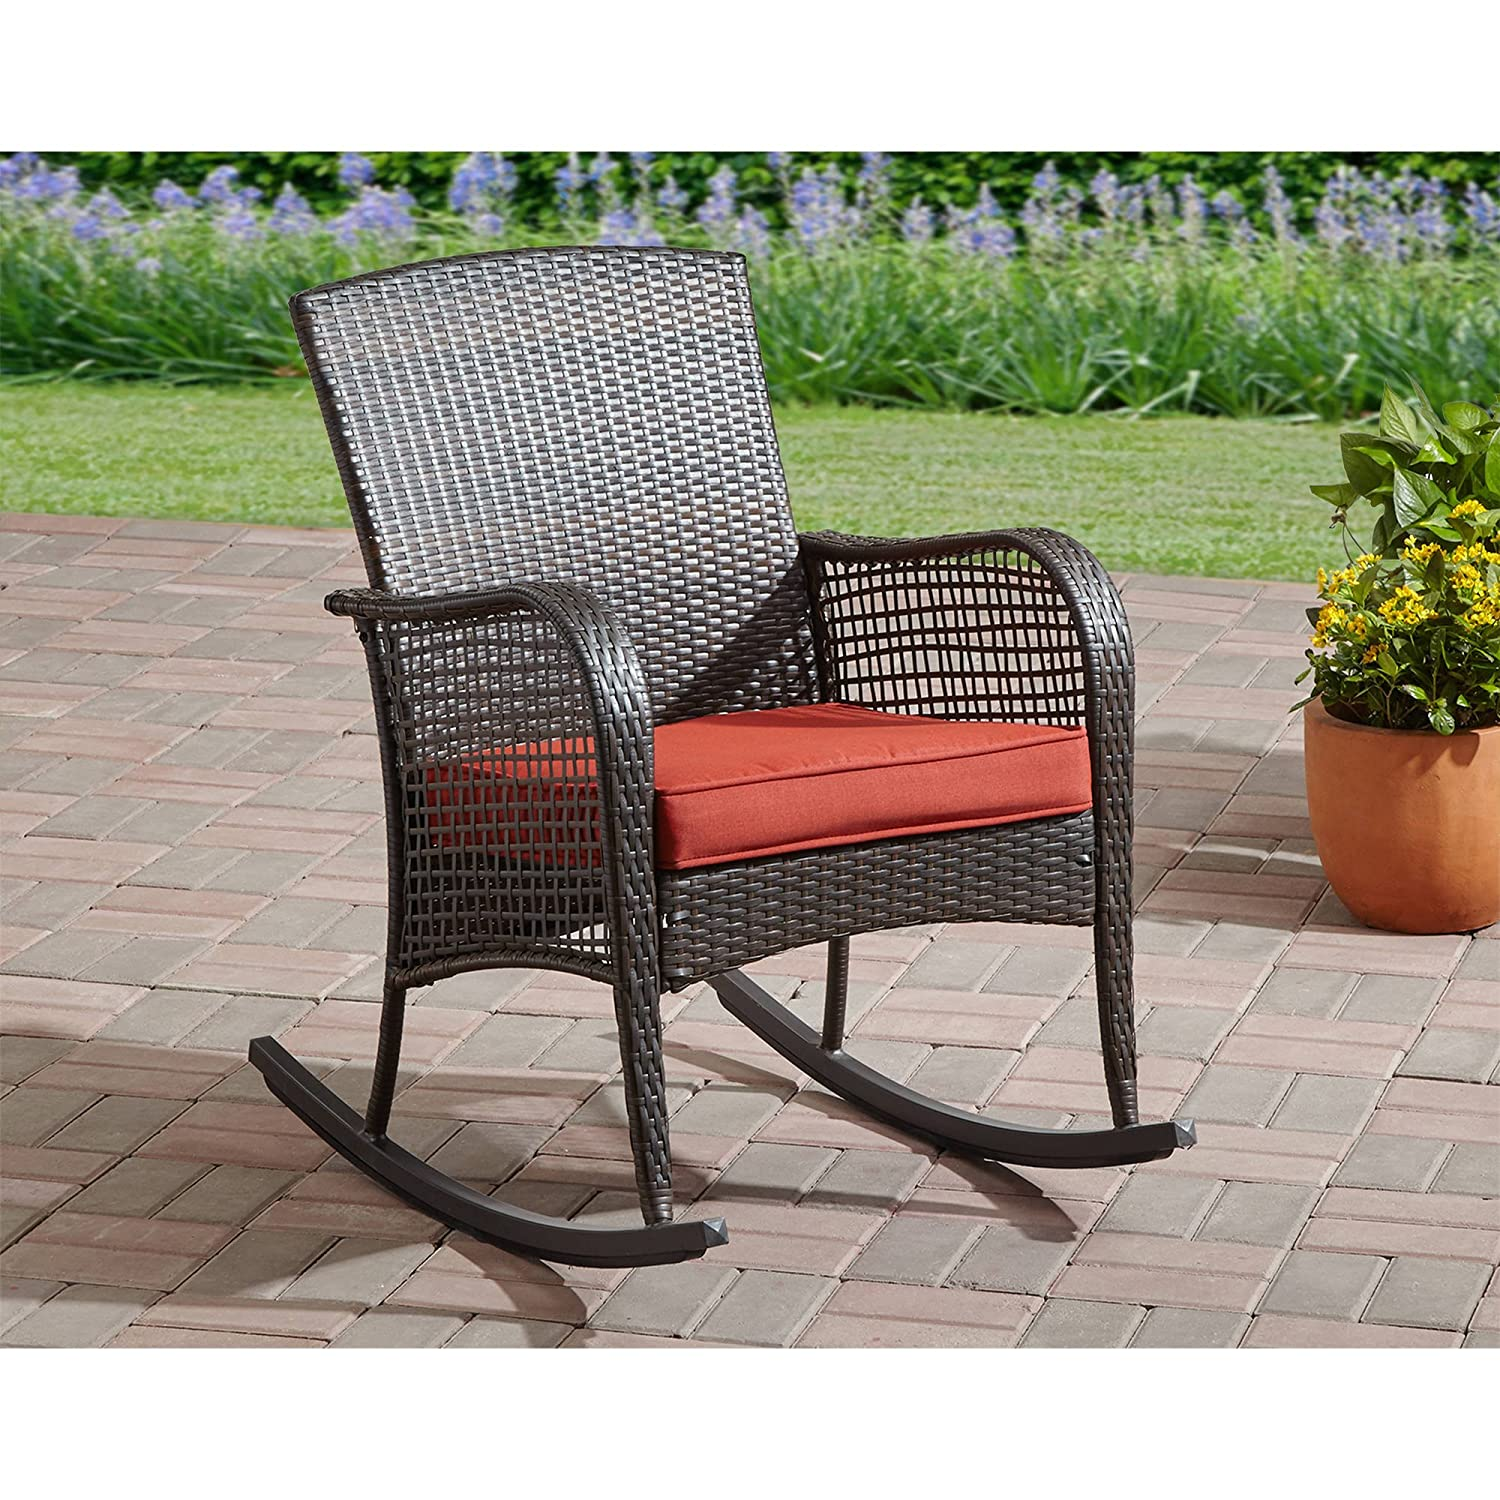 Care 4 home llc garden cushioned wicker rocking chair durable steel frame all weather lumbar support indoor and outdoor furniture porch patio comfort